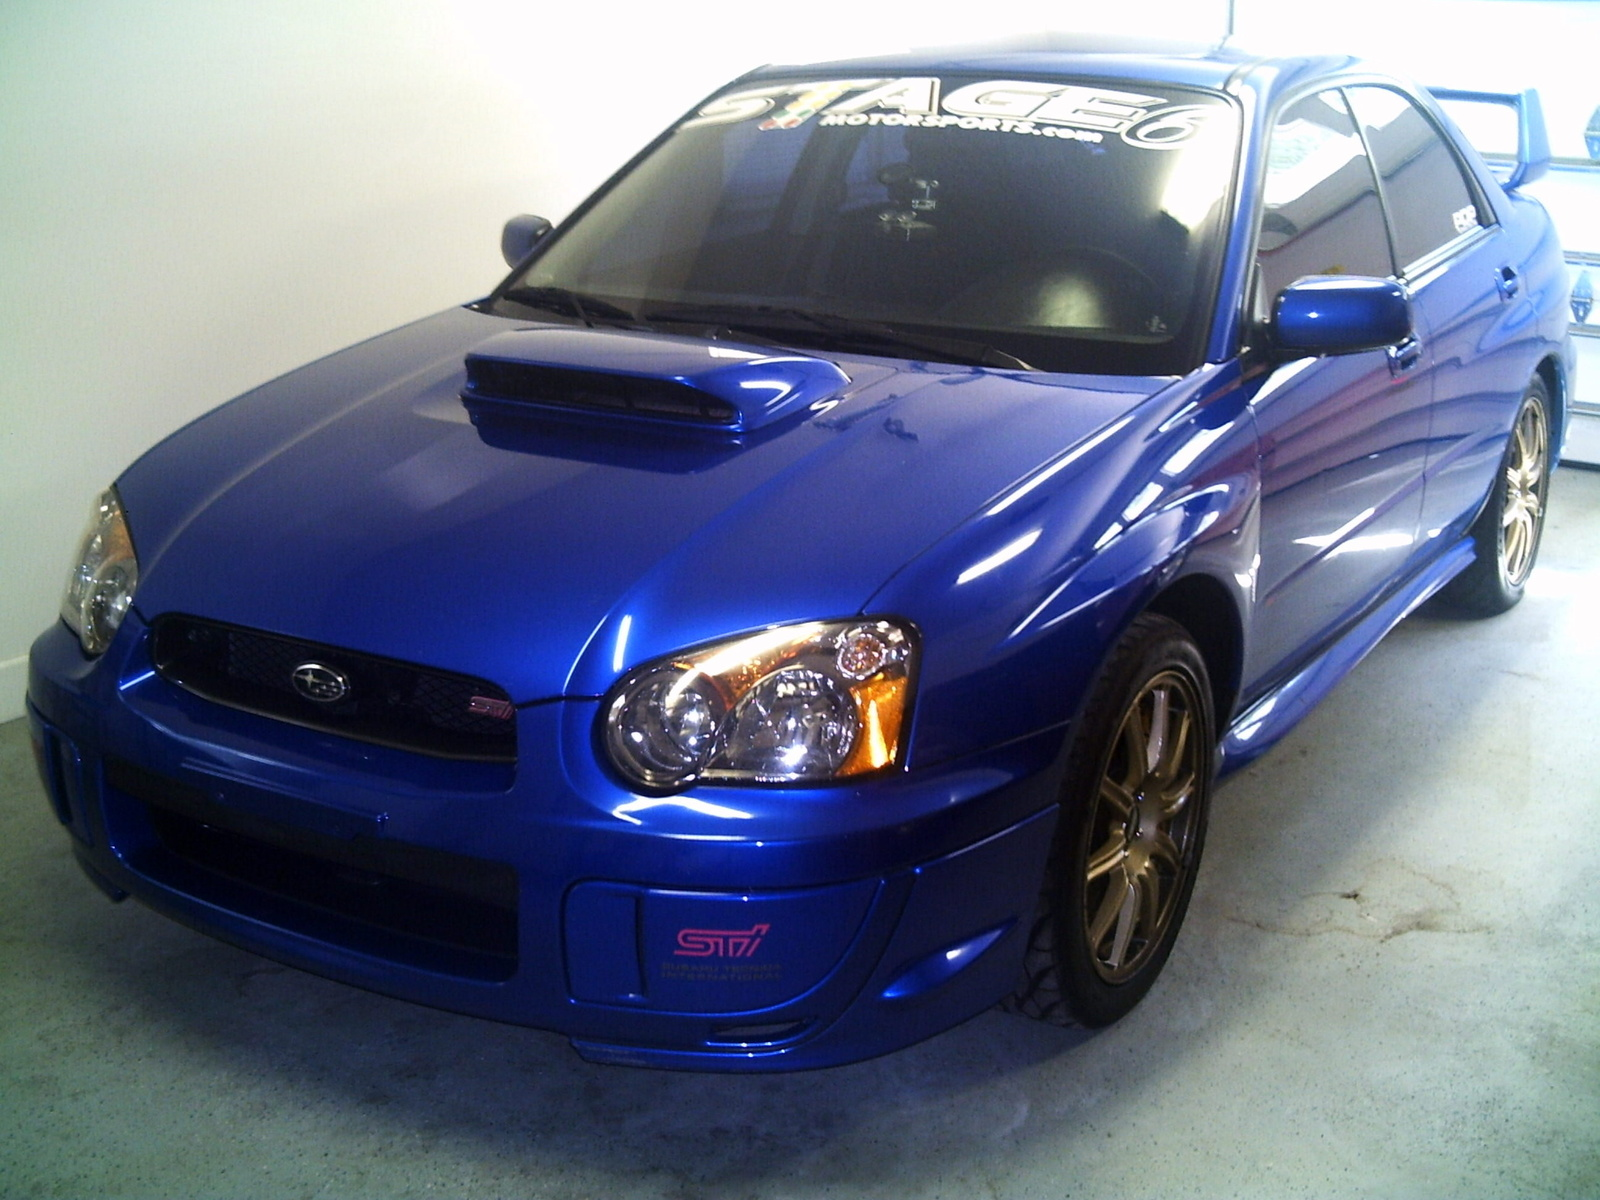 2004 subaru impreza wrx sti exterior pictures cargurus. Black Bedroom Furniture Sets. Home Design Ideas